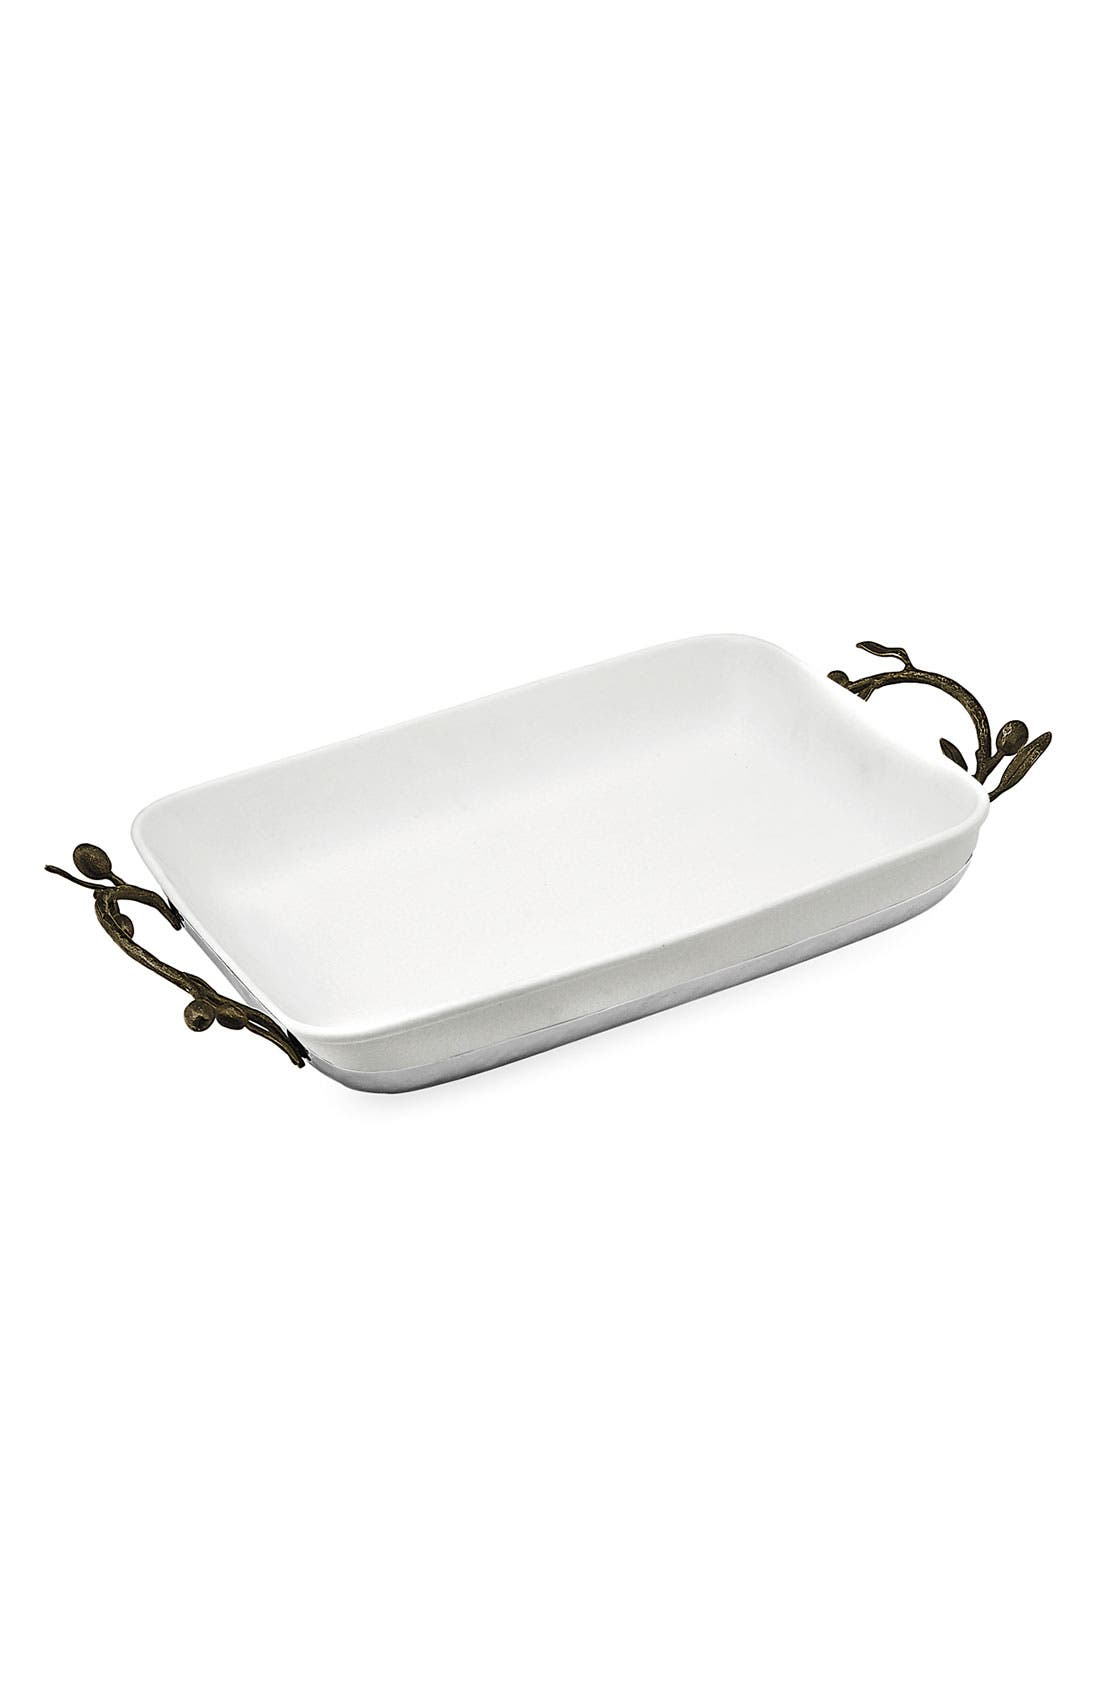 Alternate Image 1 Selected - Michael Aram 'Olive Branch' Casserole Dish